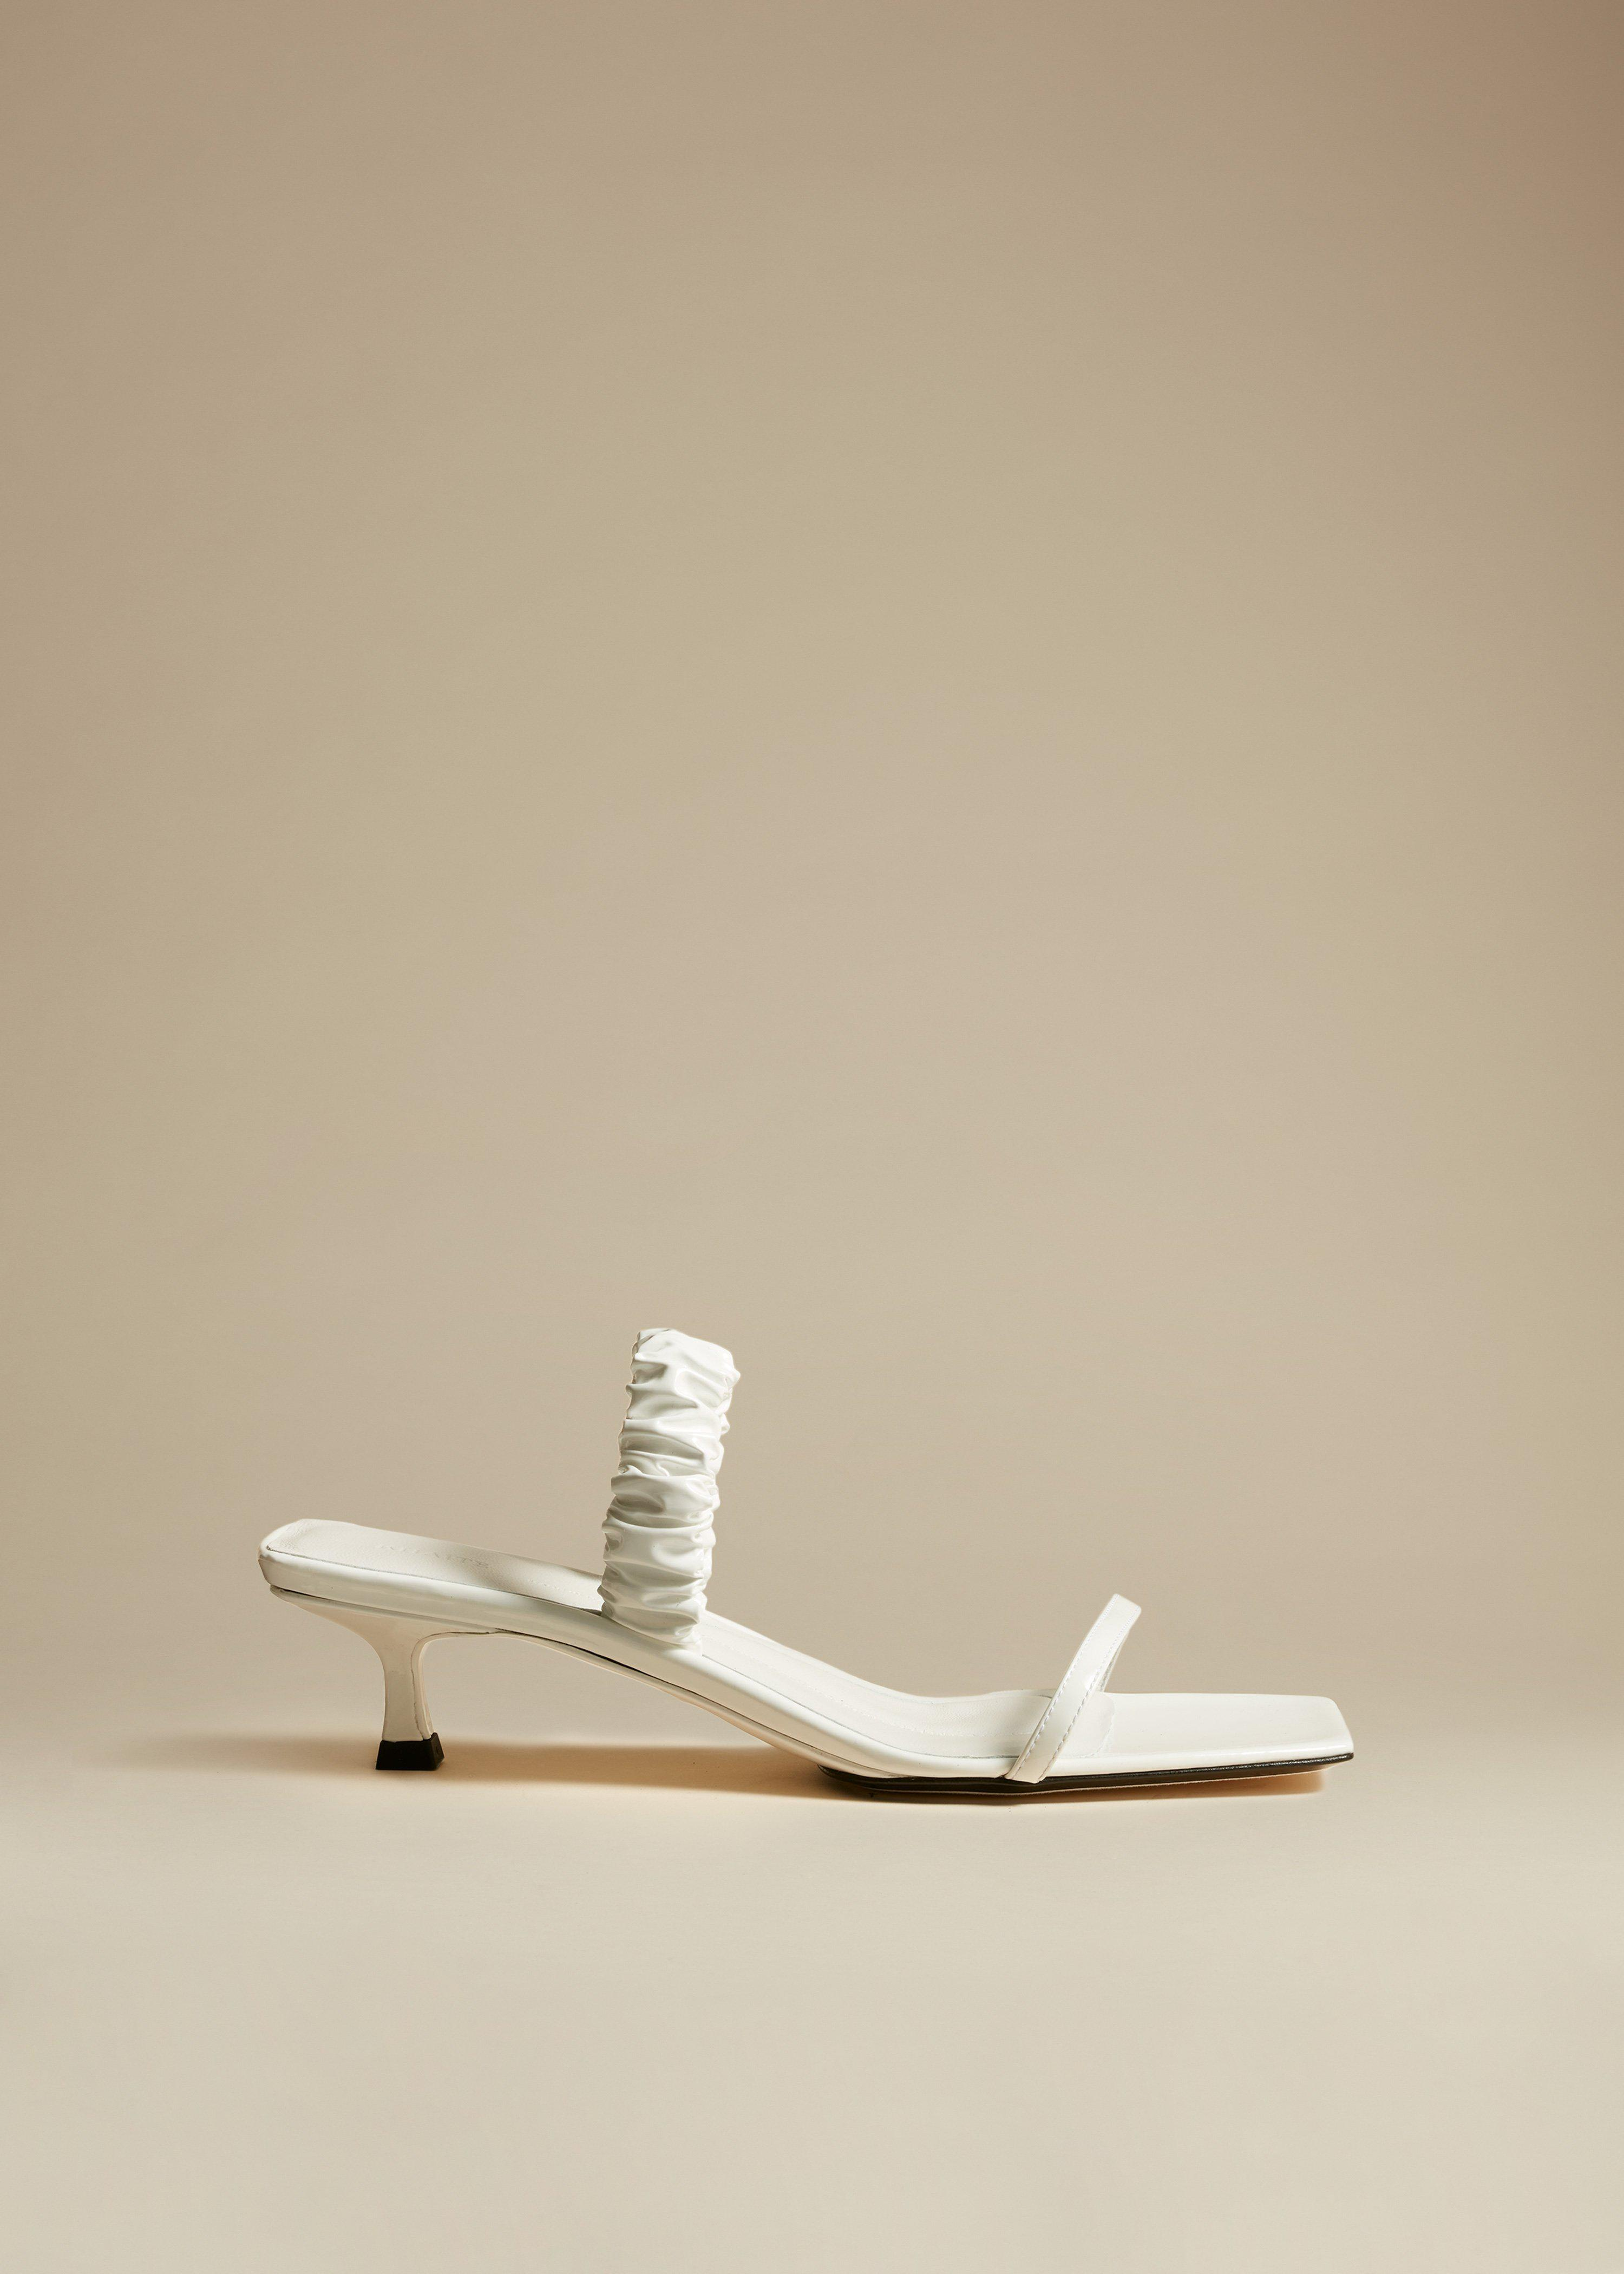 The Georgia Heel in White Patent Leather